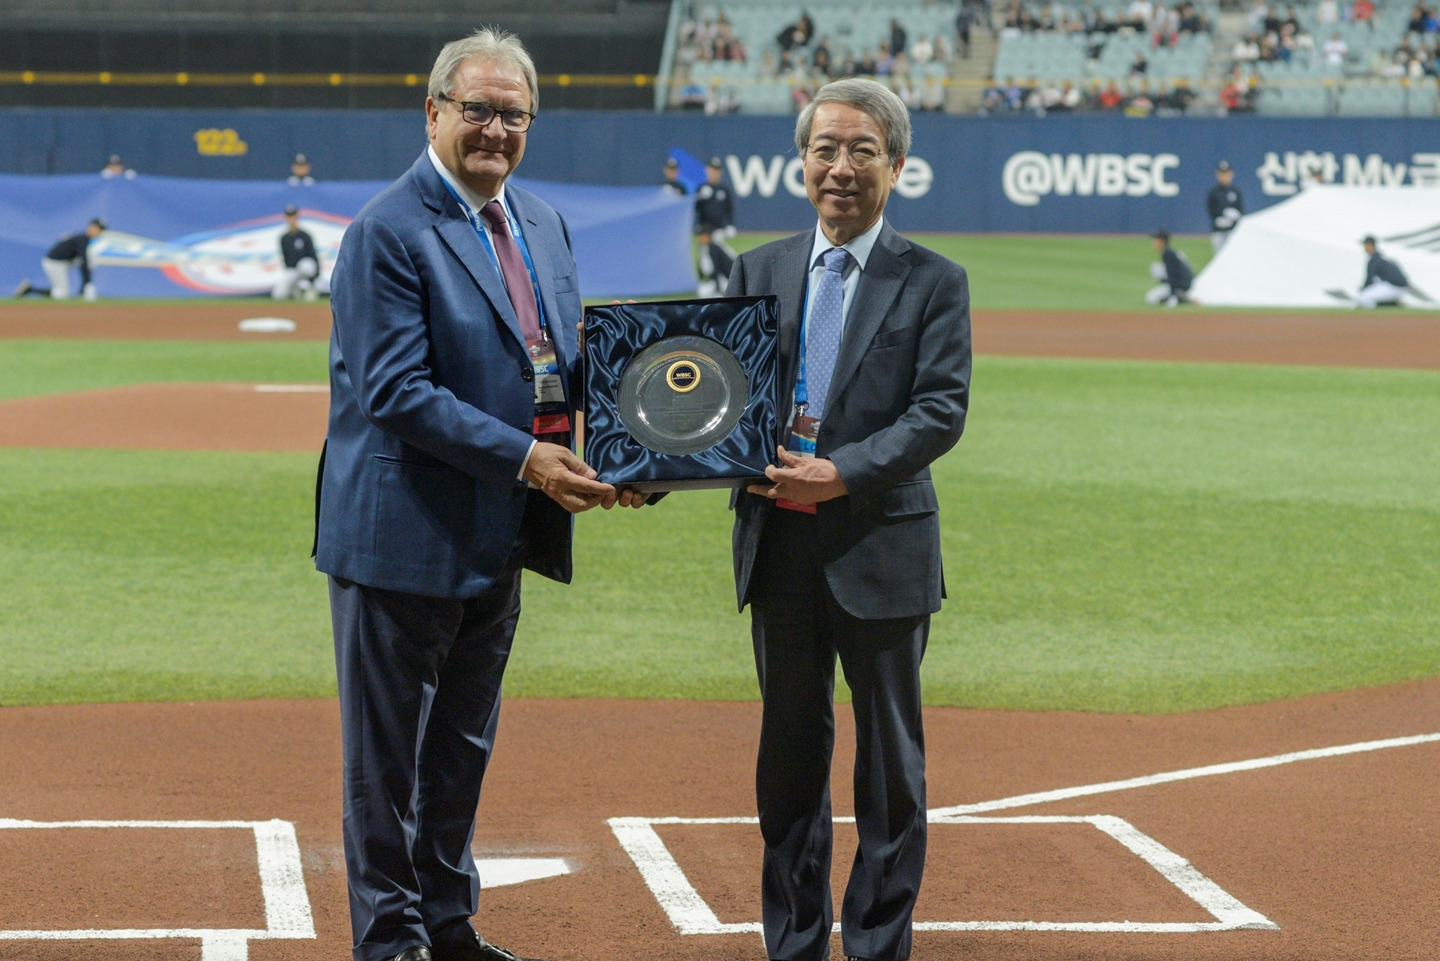 WBSC President Riccardo Fraccari presents a plaque to KBO Commissioner Chung Un Chan